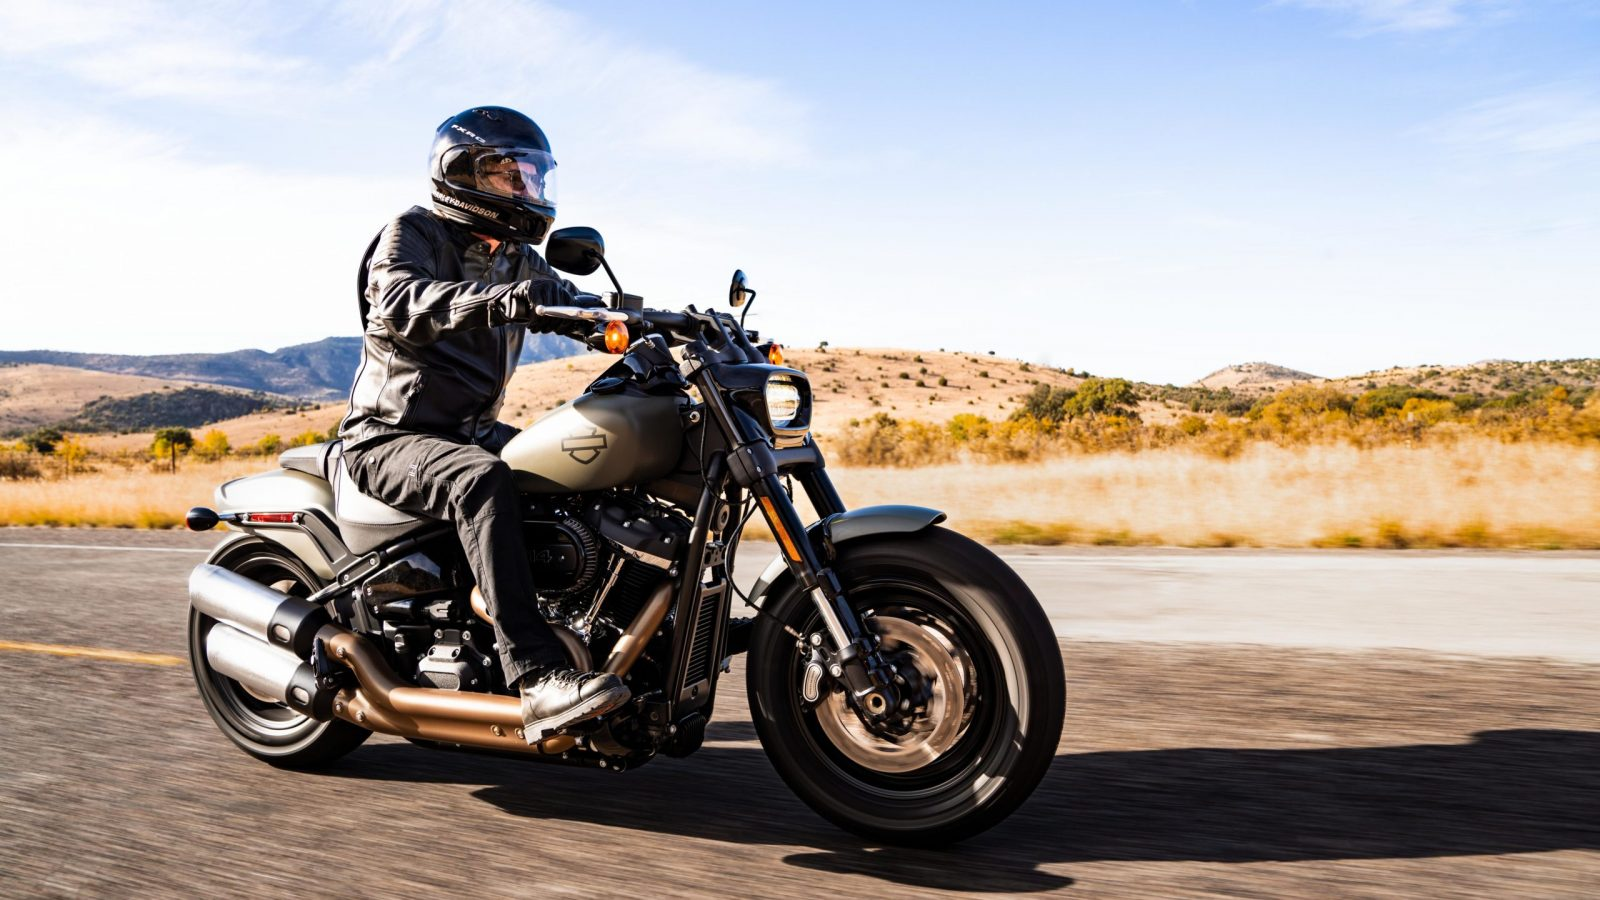 201461_my21_fxfbs_riding_0196_sgt